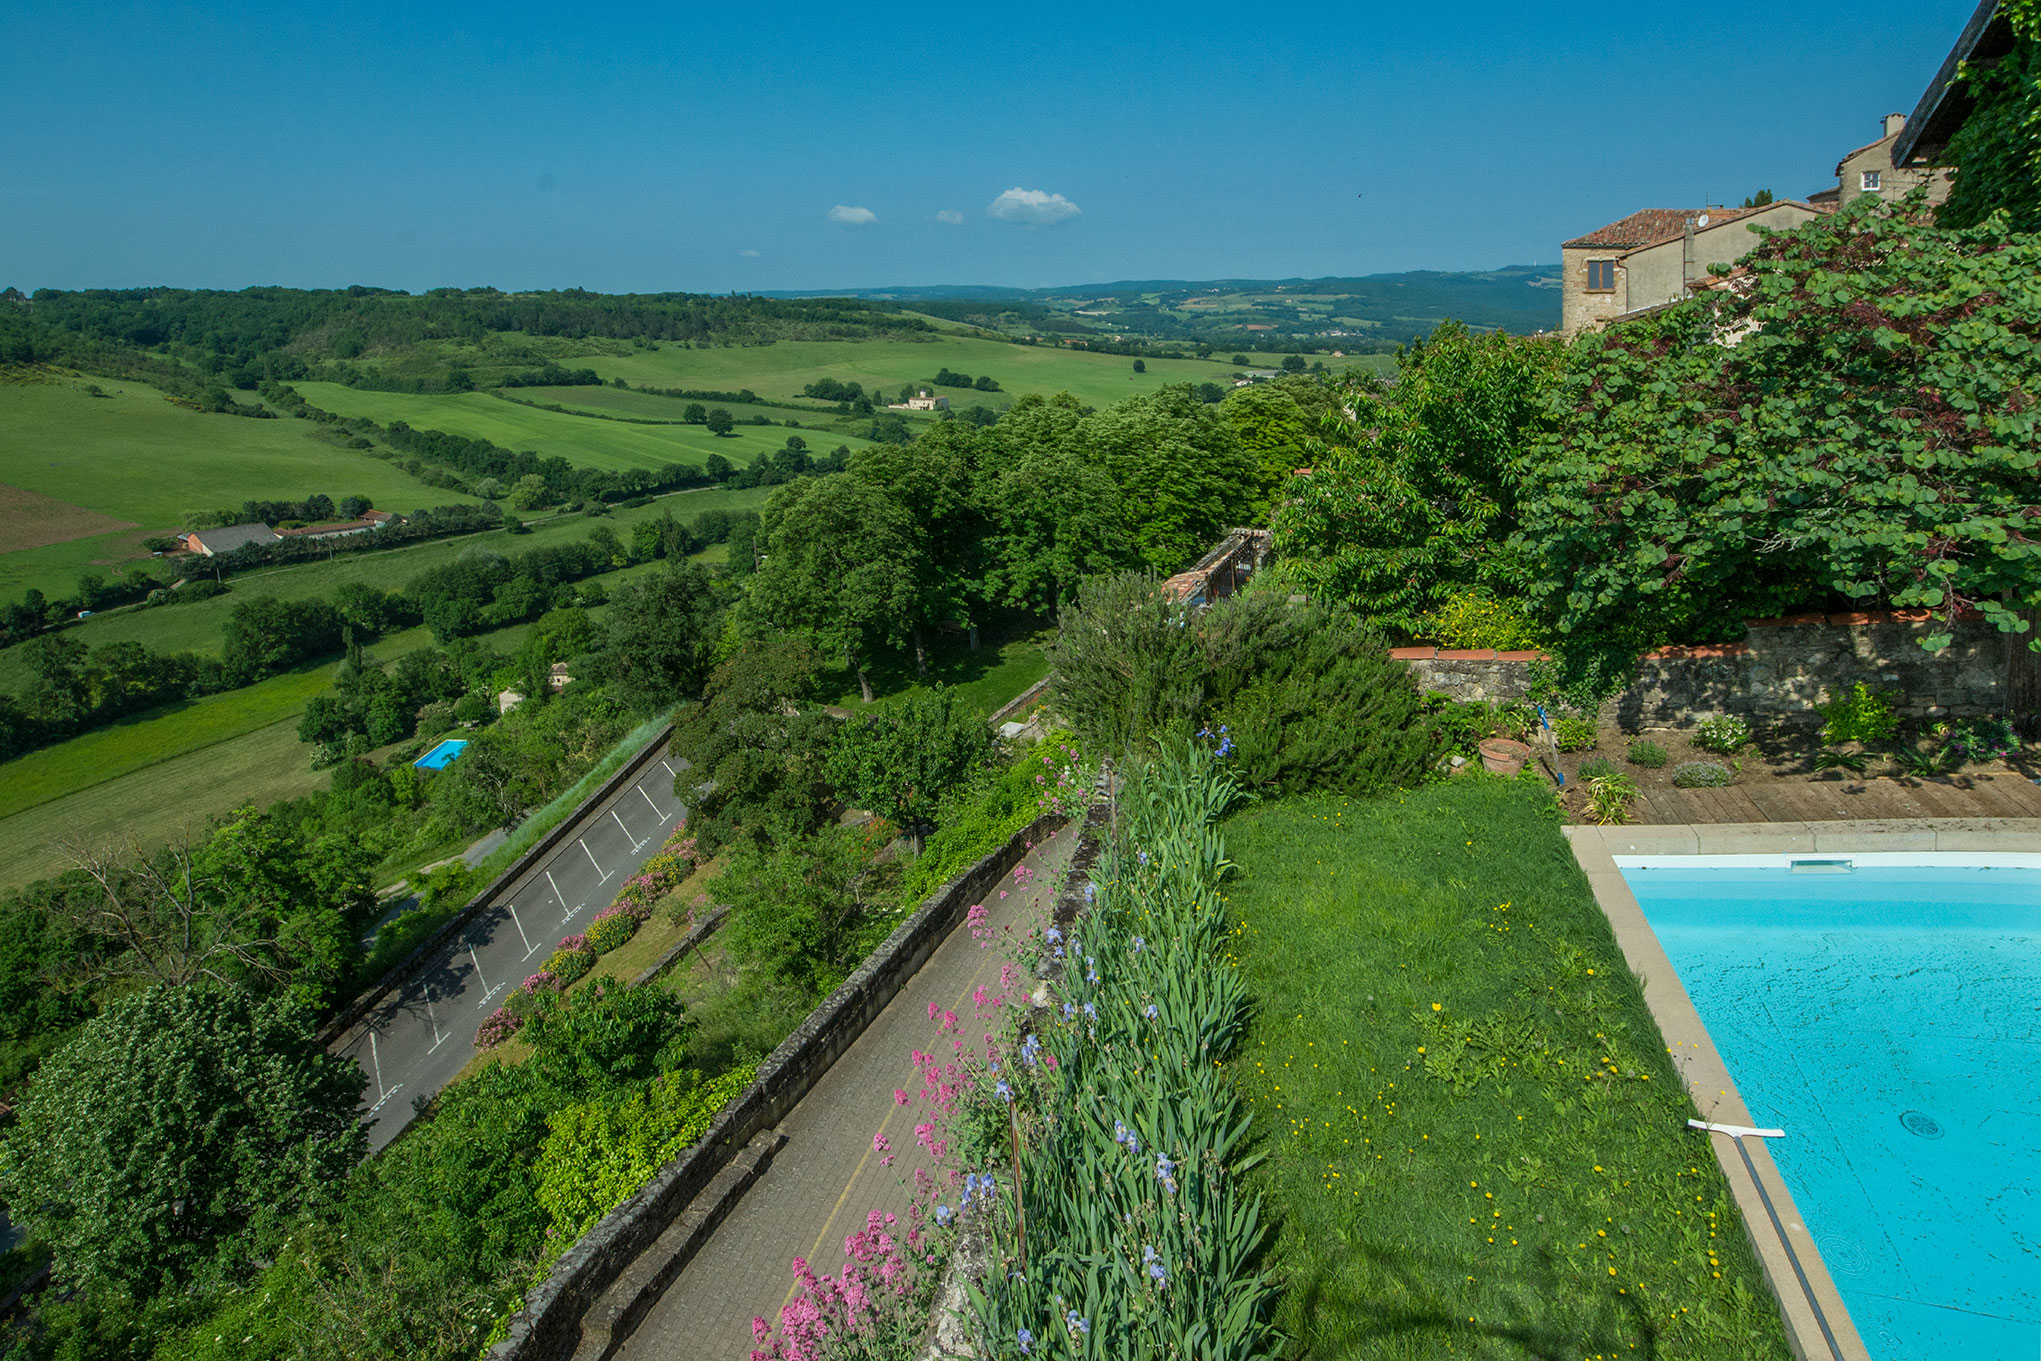 Our pool and garden, showing the proximity to the nearby Aurosse valley. The lower road (with parking lines) is the only road to the top of the medieval village, or Le Cite. Taken May 2018.